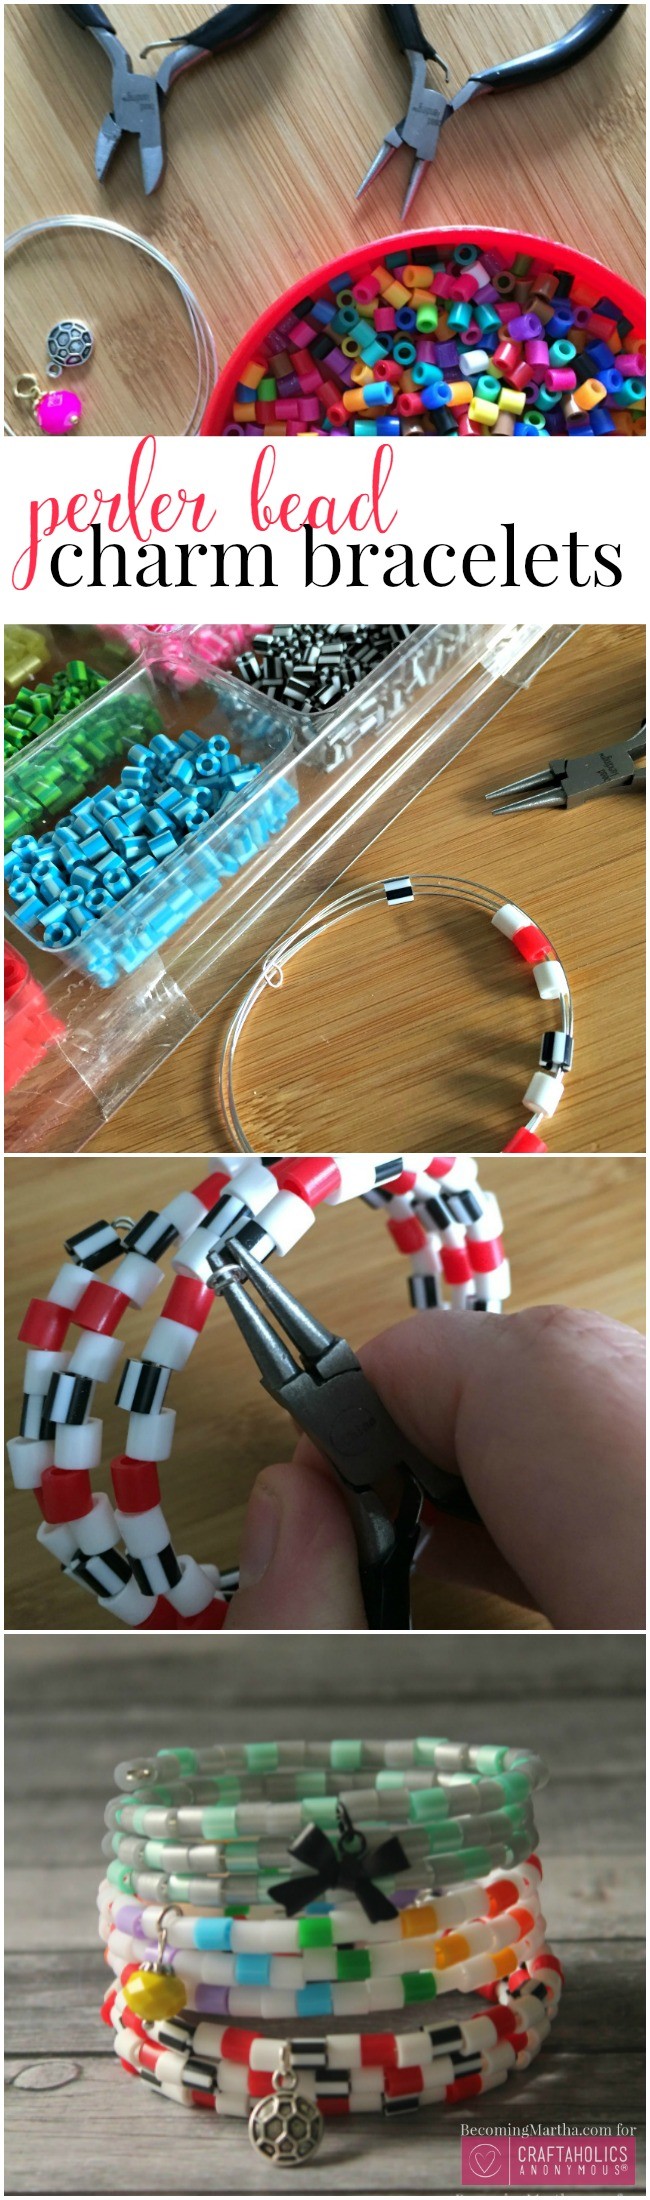 how to make perler bead bracelets